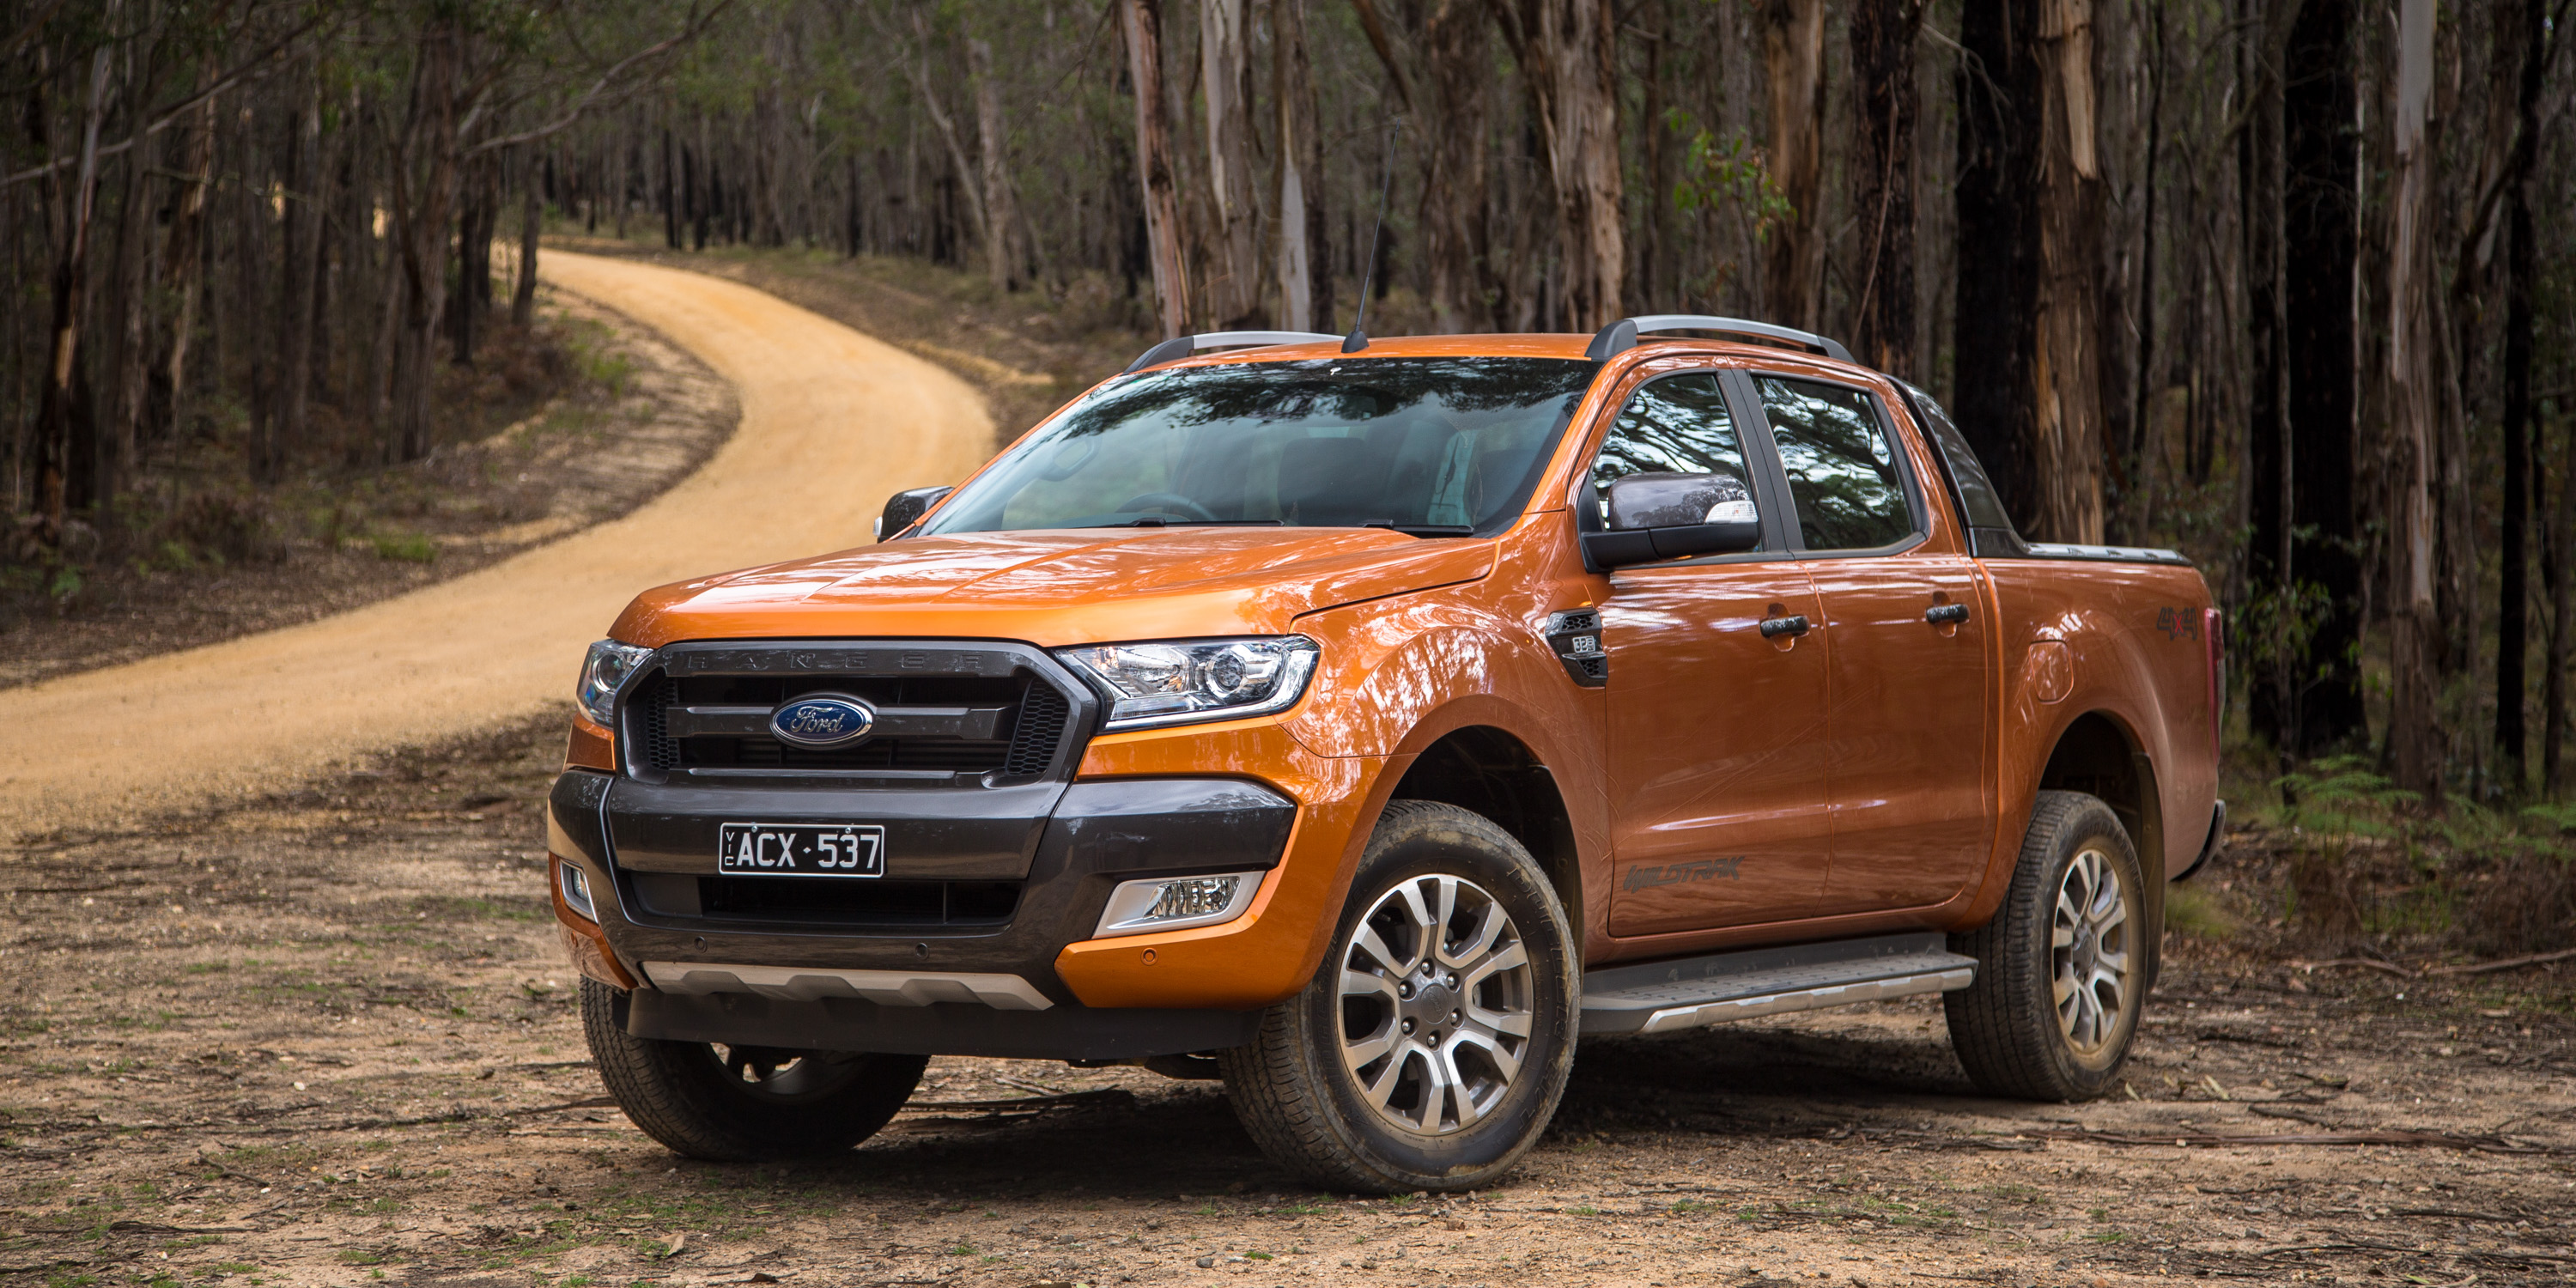 16 popular 2016 ford ranger wildtrak review. Black Bedroom Furniture Sets. Home Design Ideas